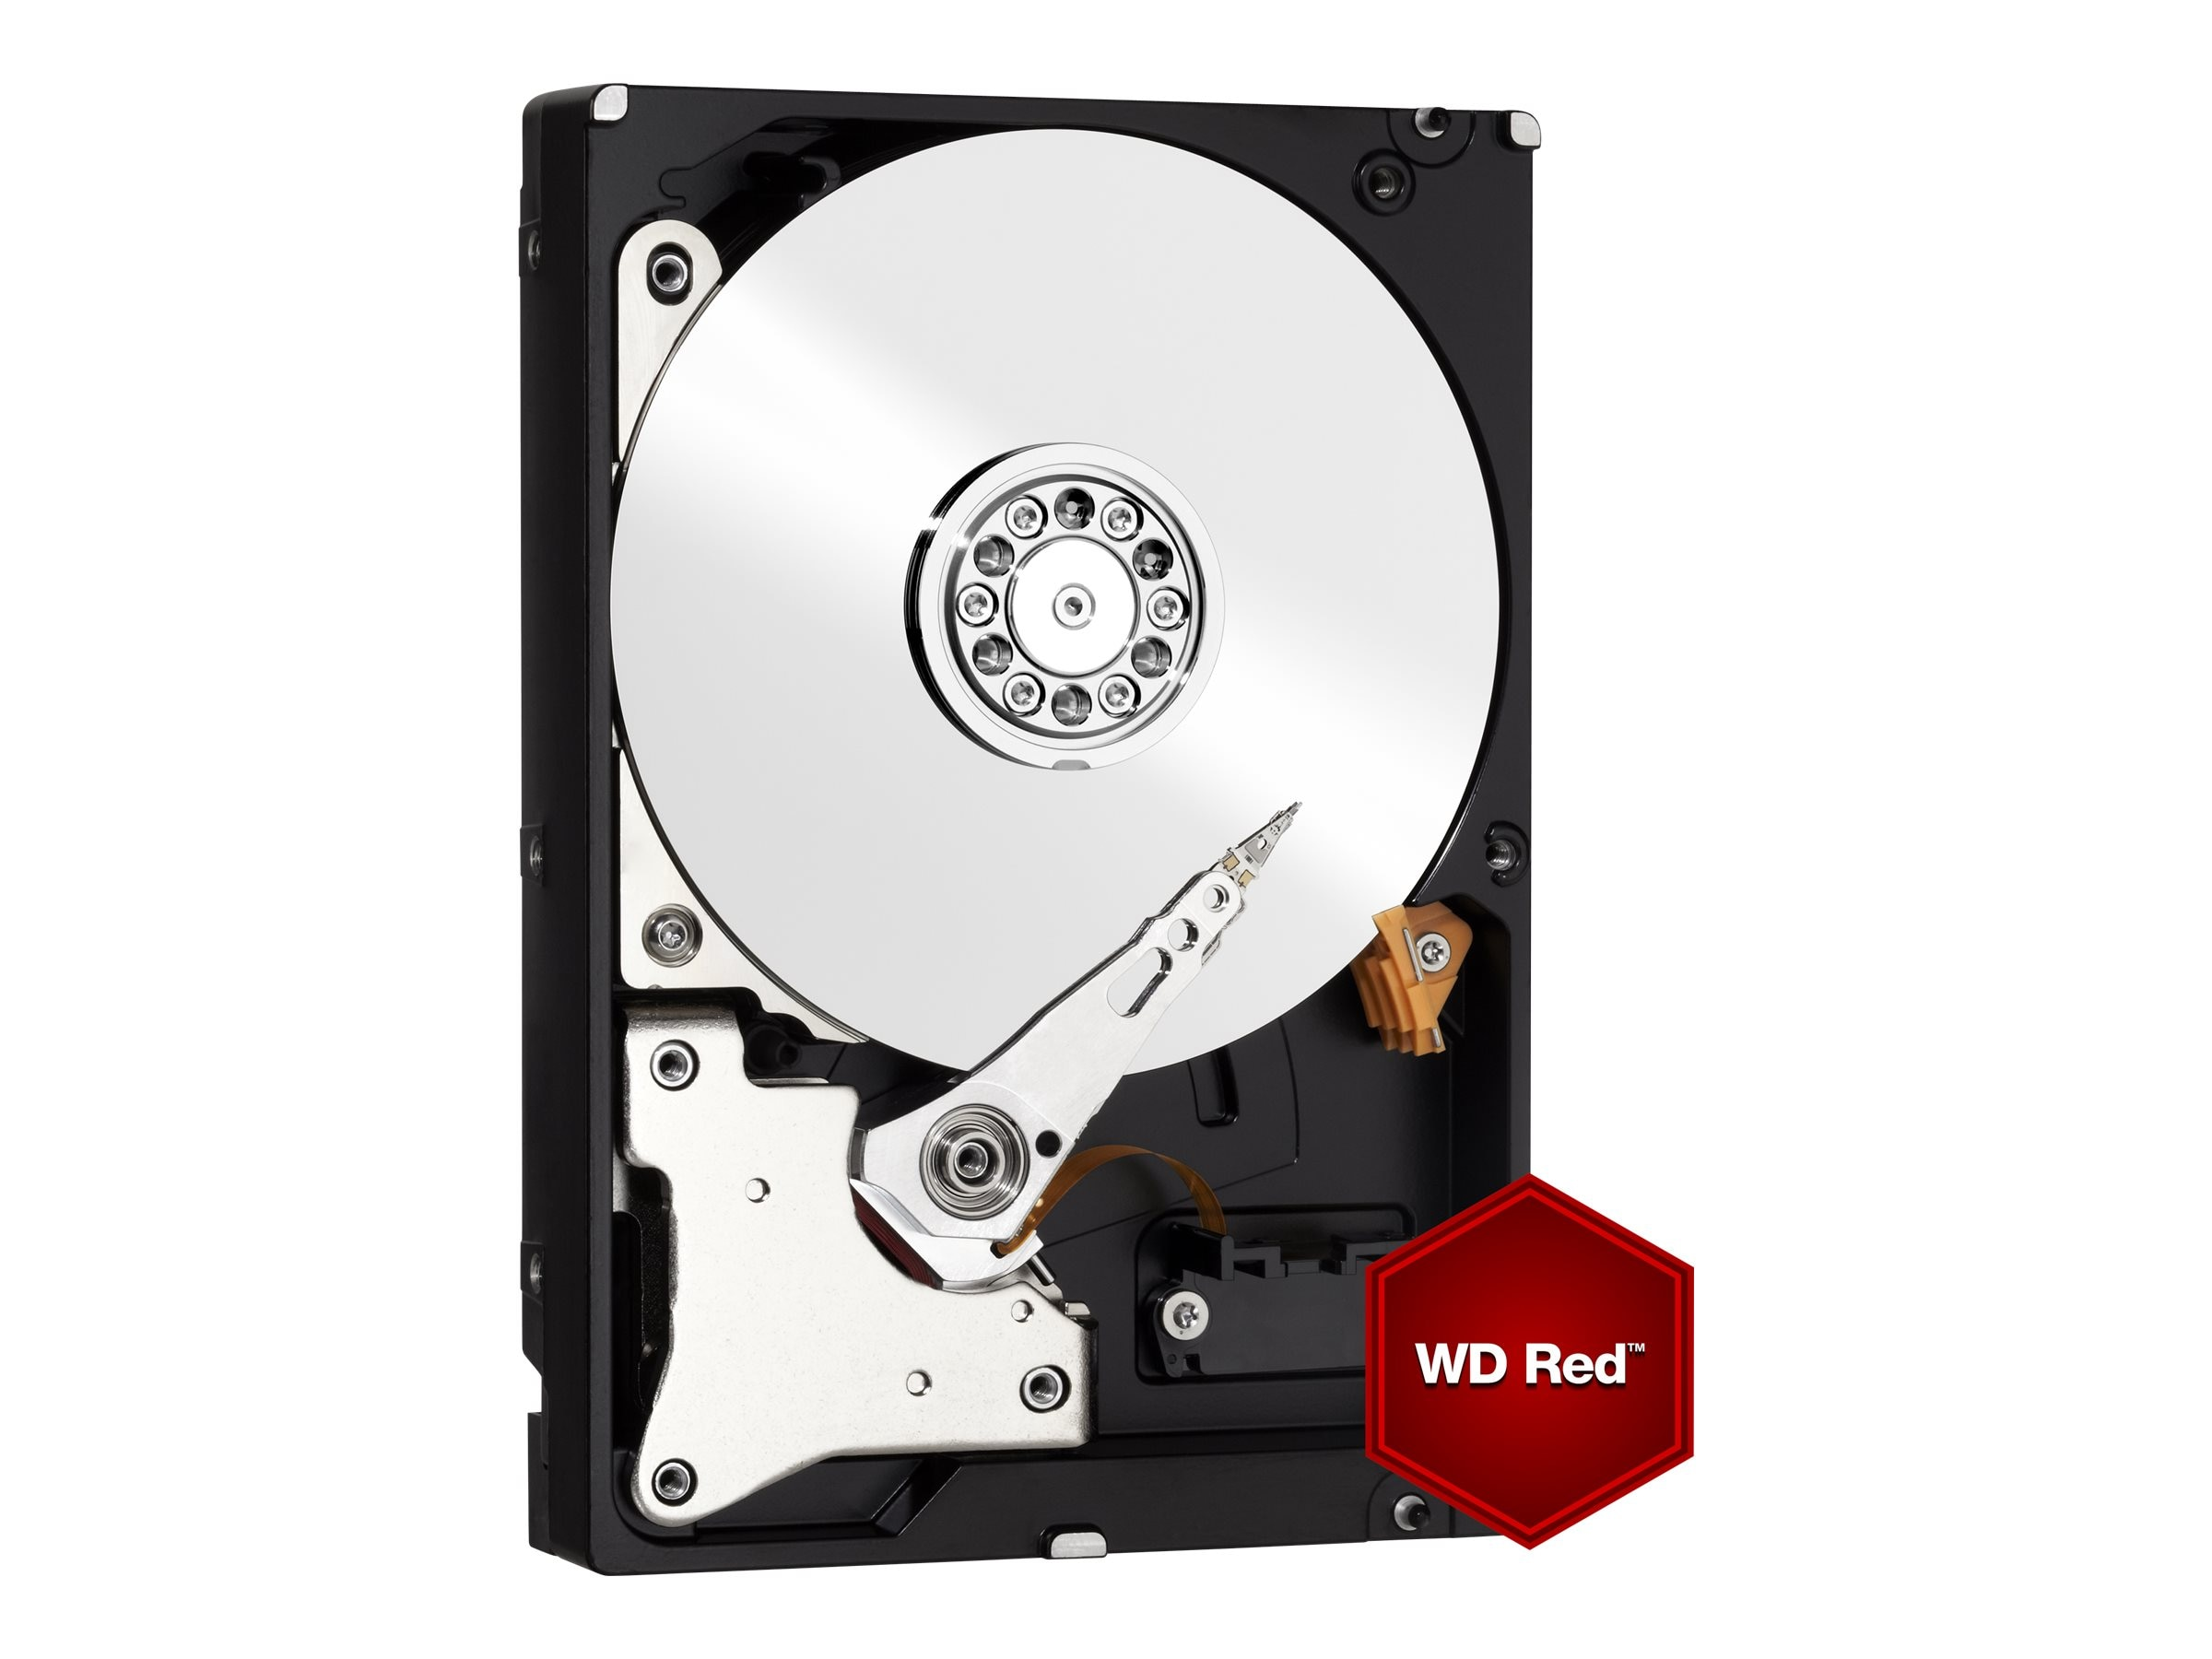 WD 2TB WD Red SATA 6Gb s 3.5 Internal NAS Hard Drive, WD20EFRX